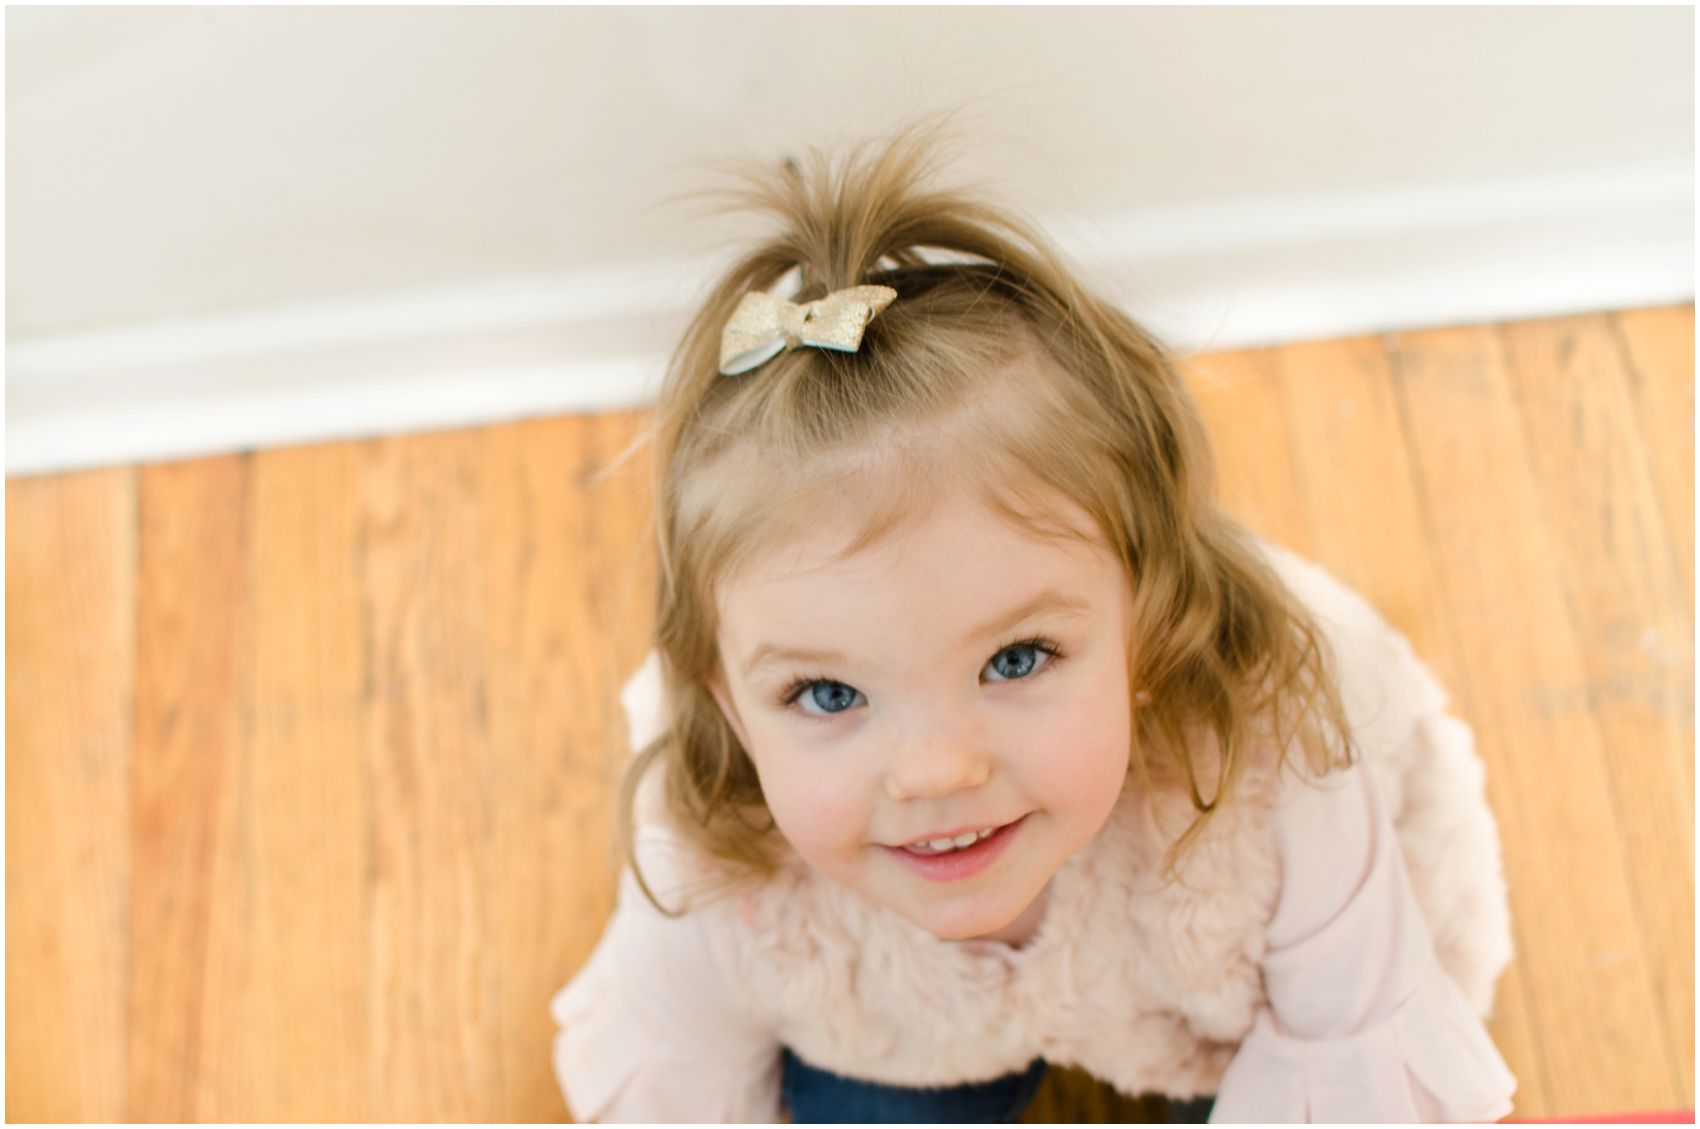 little blonde girl with blue eyes looking up and smiling